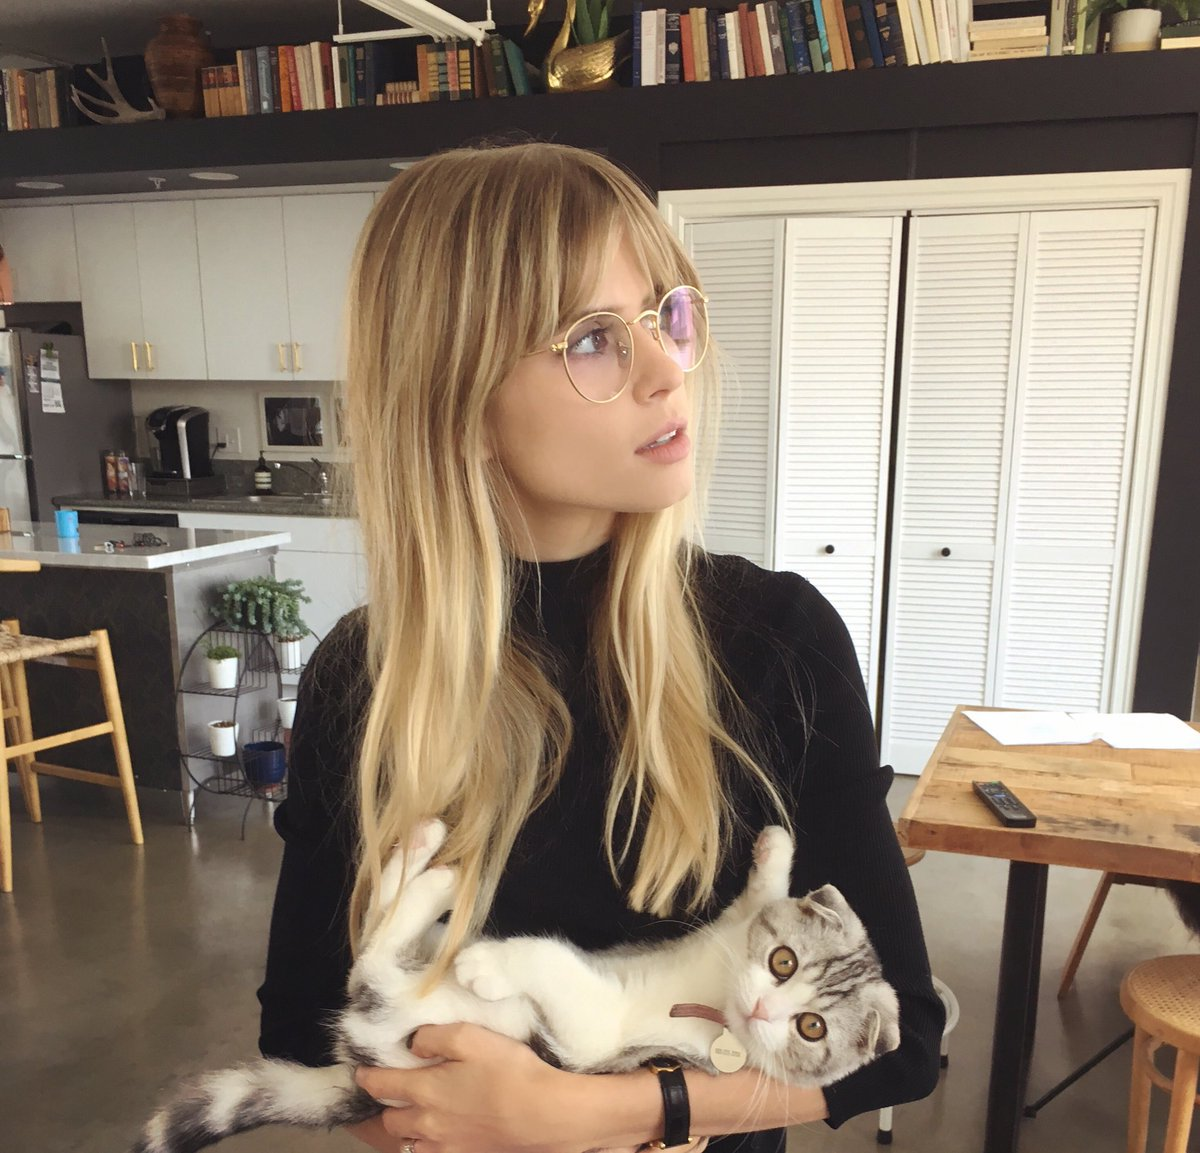 Snapchat Carlson Young naked (52 foto and video), Topless, Hot, Boobs, underwear 2020